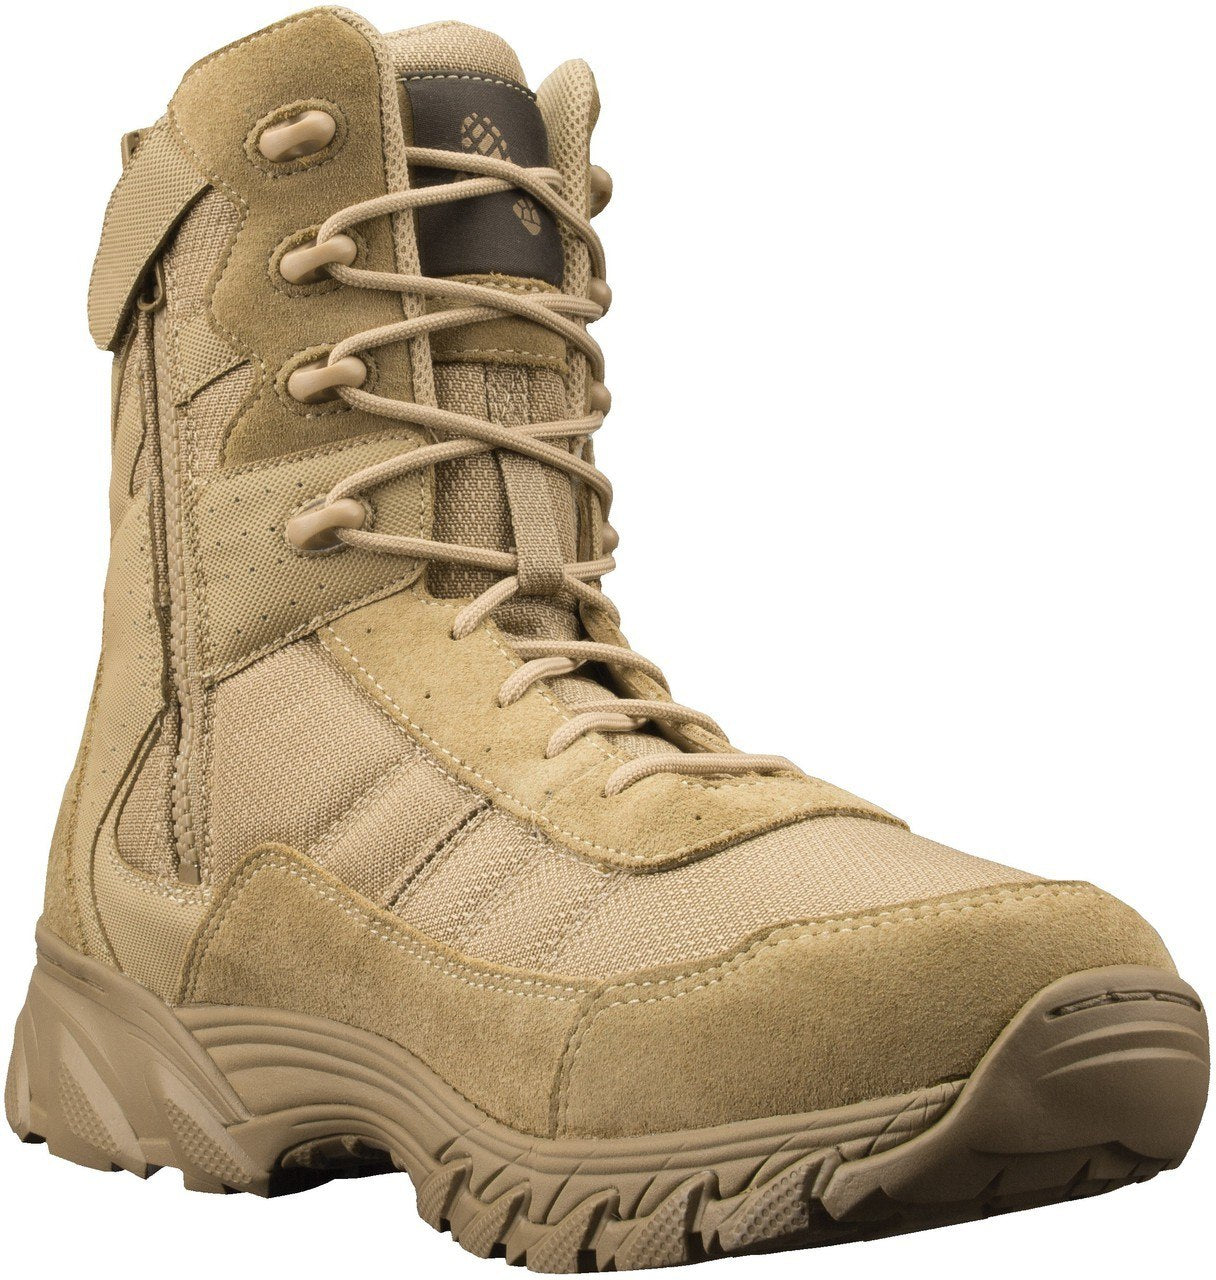 "Altama 305302 Men's Vengeance SR 8"" Side Zip Boots, Tan"